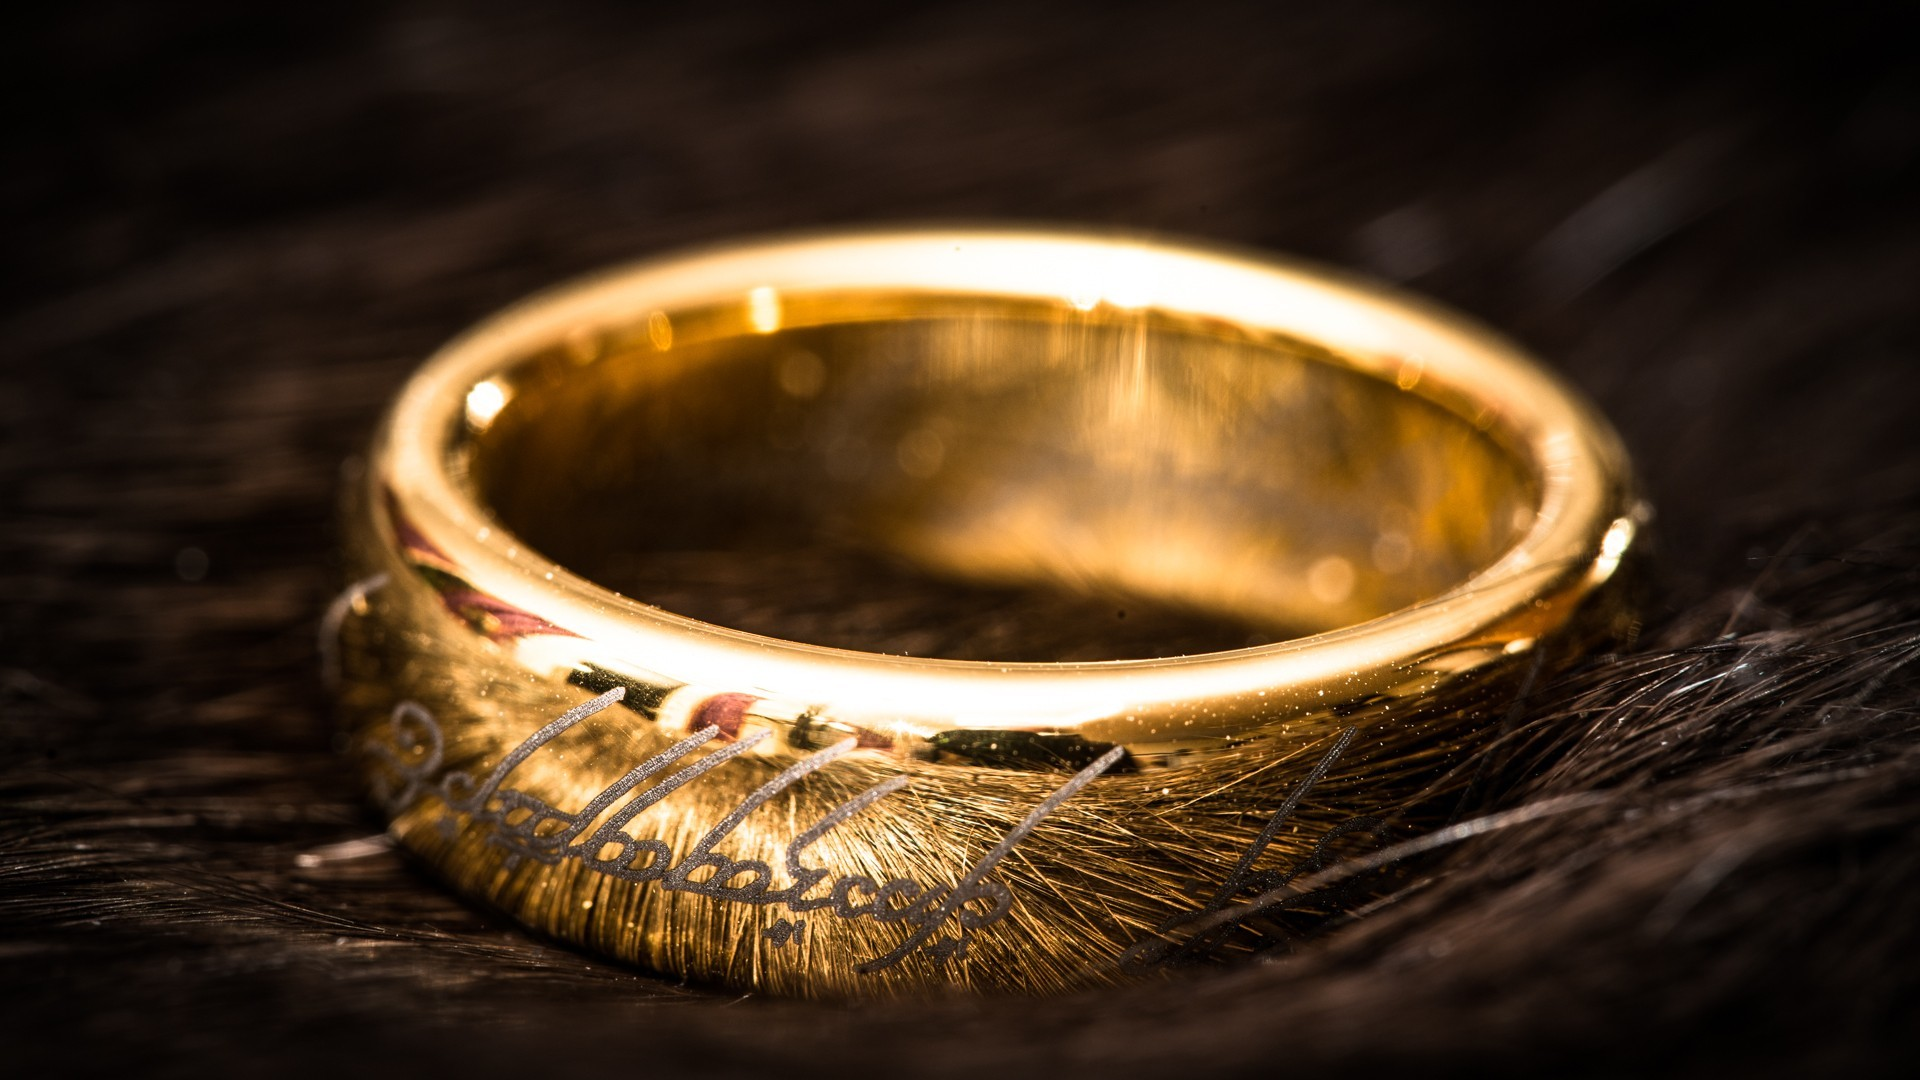 rings_the_lord_of_the_rings_one_ring_hd_wallpaper.jpg